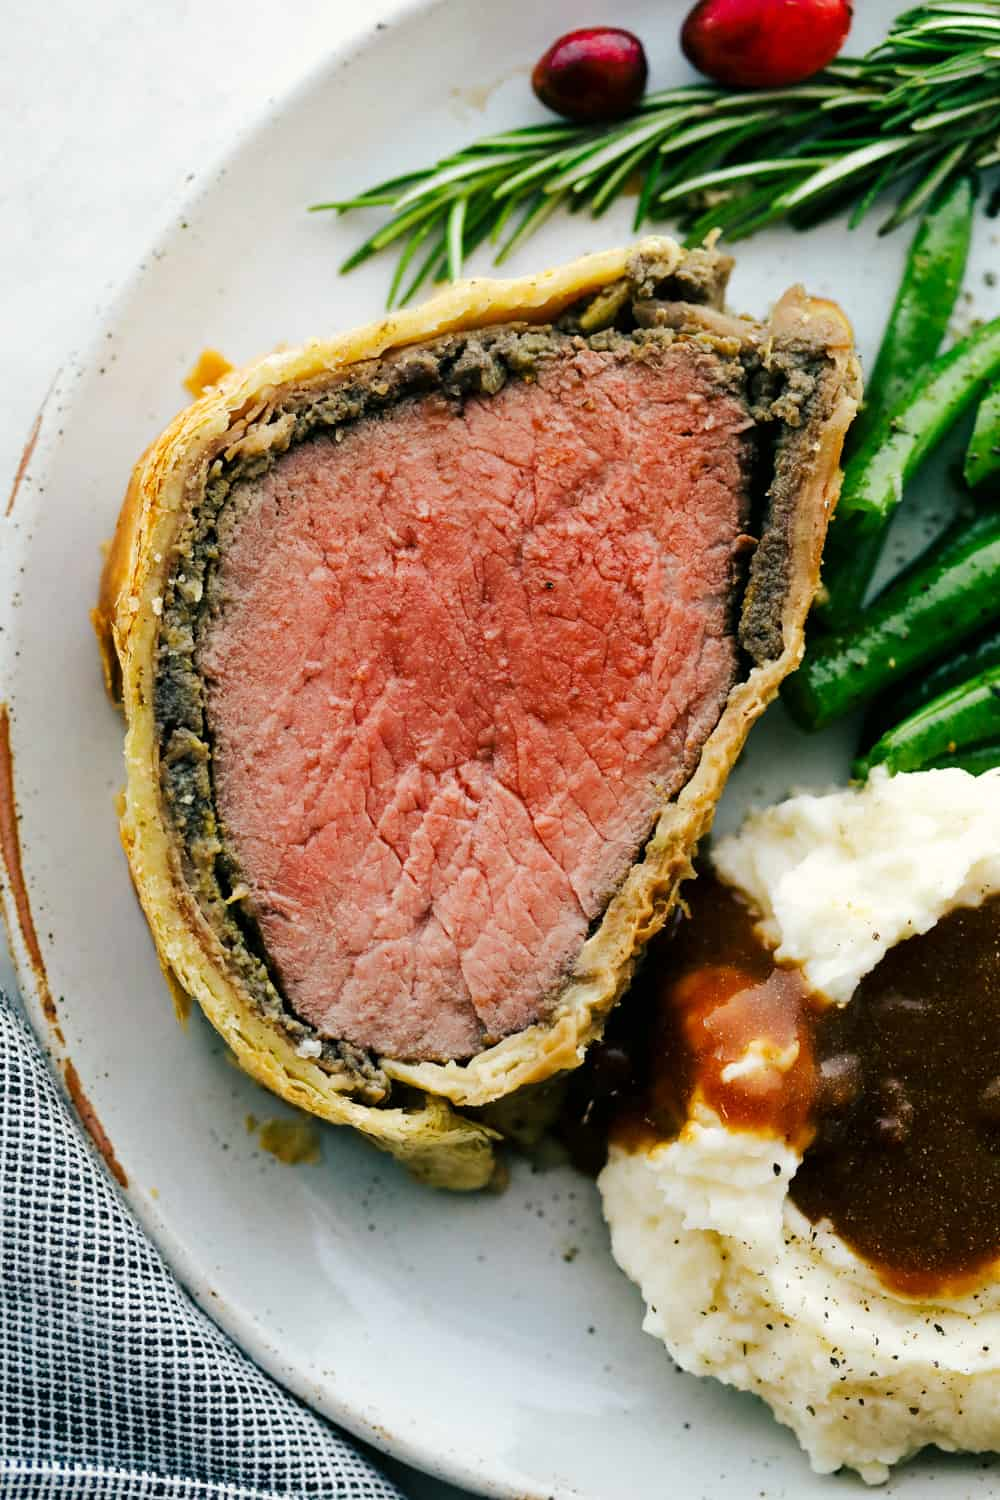 Beef Wellington sliced onto a plate with mashed potatoes and green beans